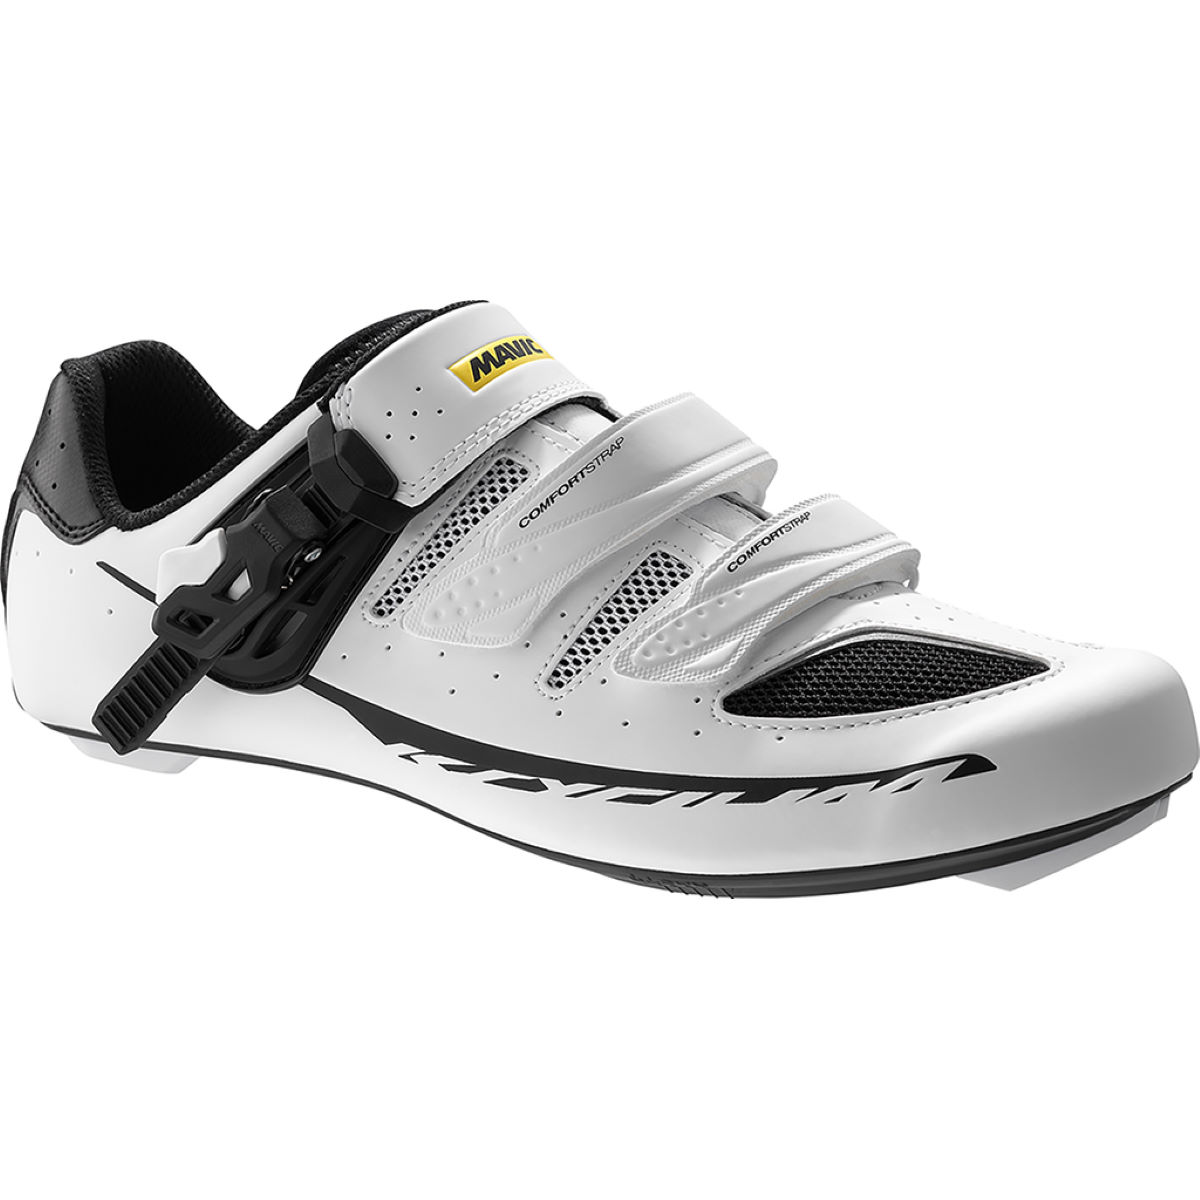 Chaussures Mavic Ksyrium Elite Maxi Fit II - 5,5 UK Blanc Chaussures de route